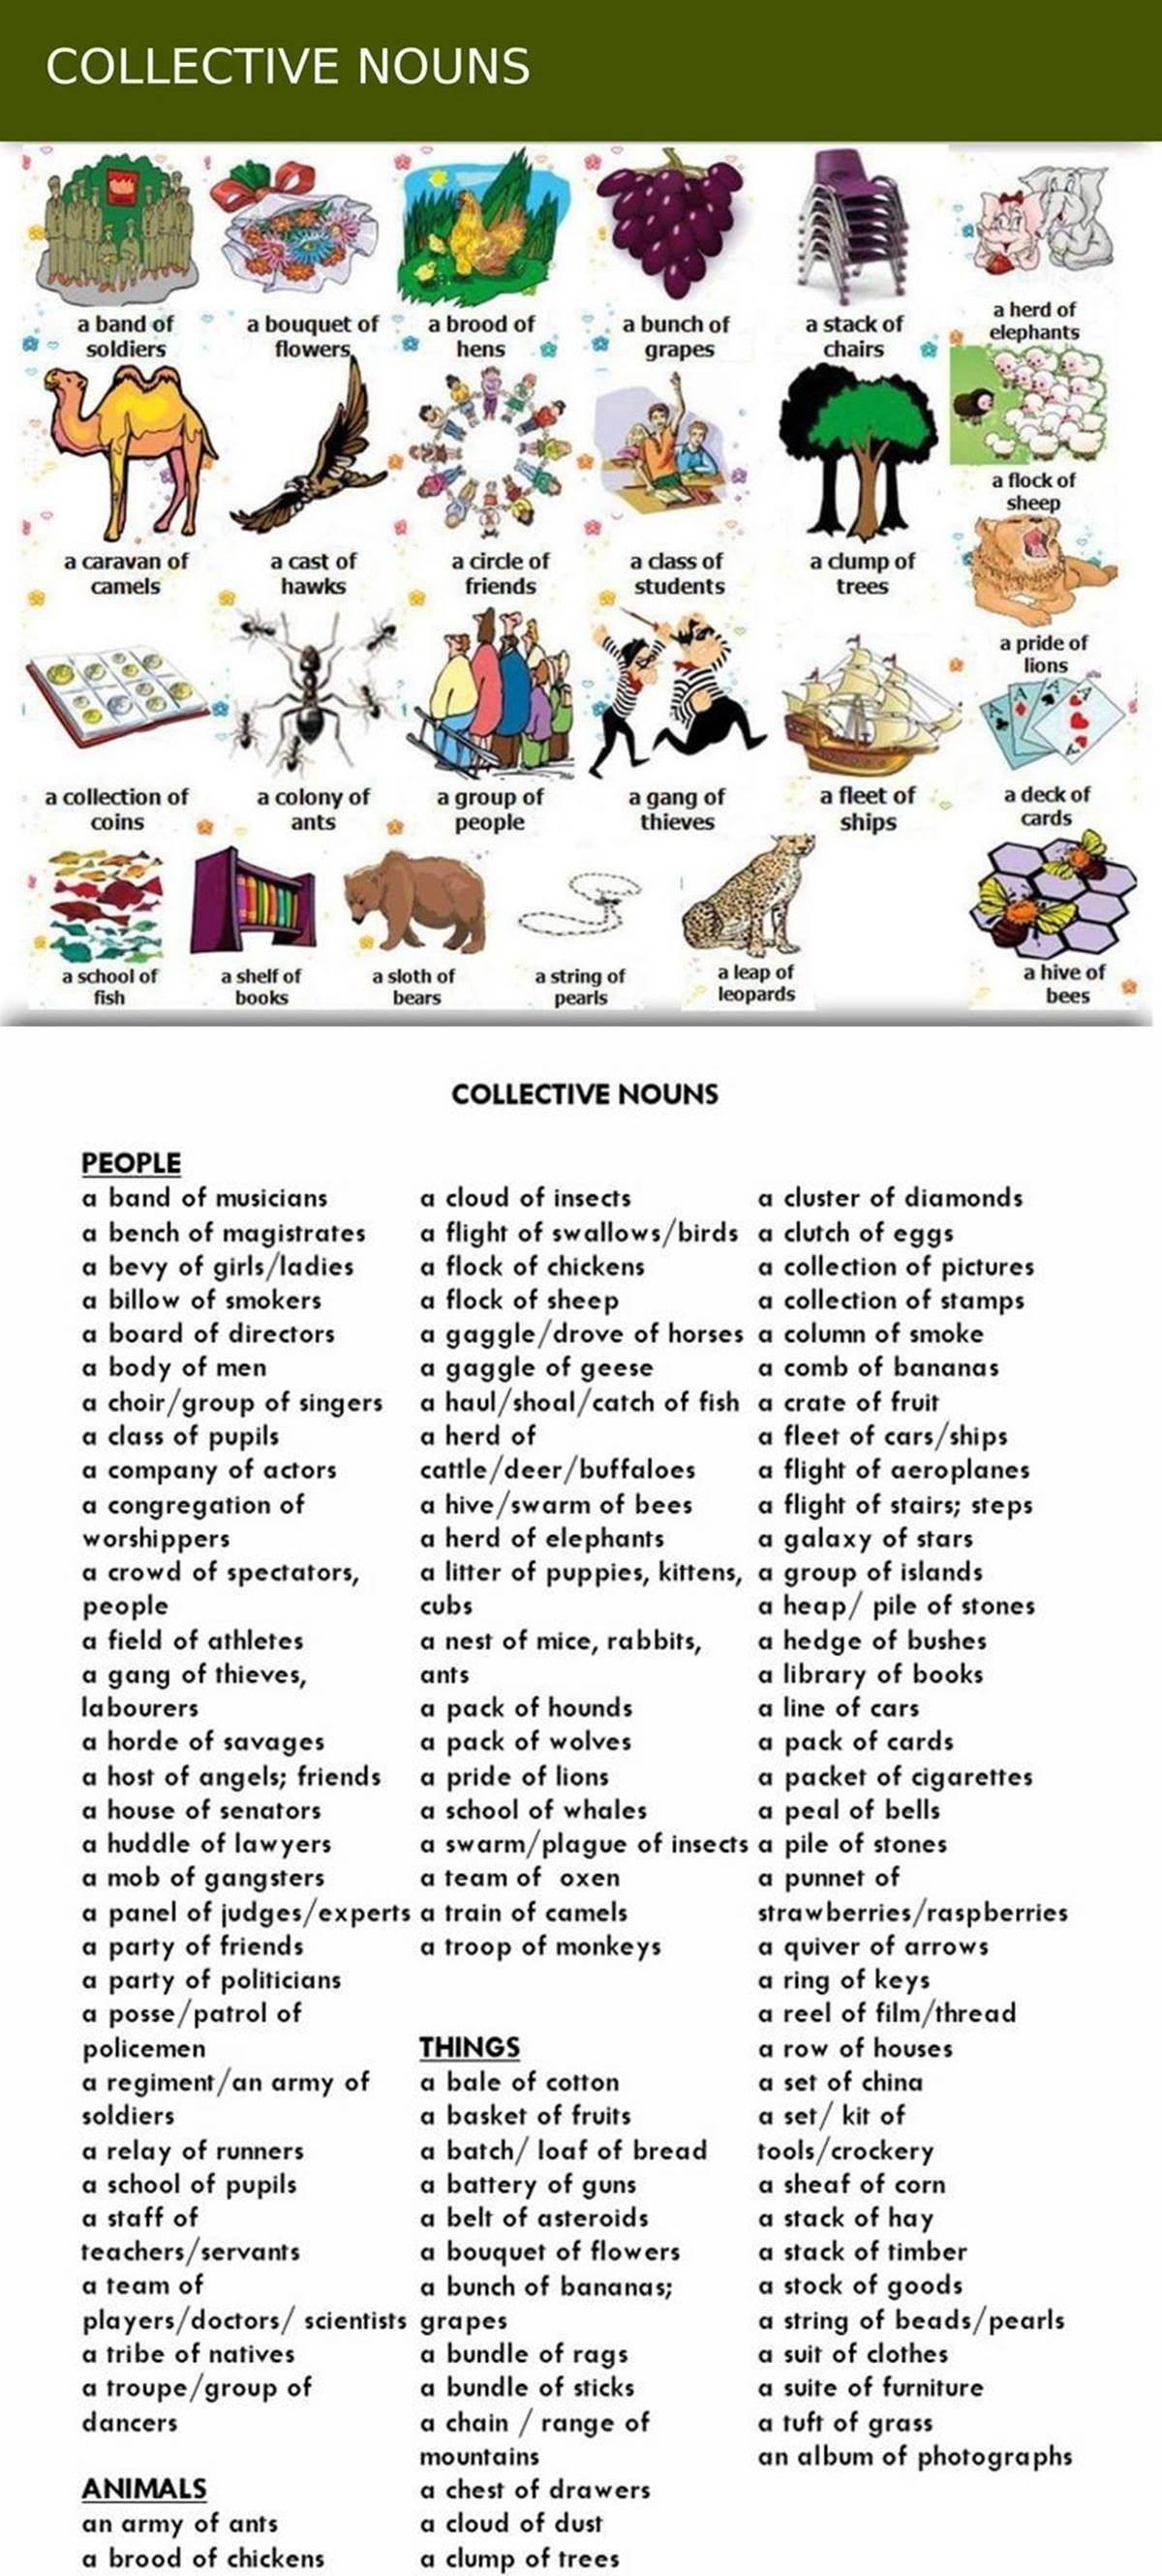 Collective Nouns Group Words for People, Animals and